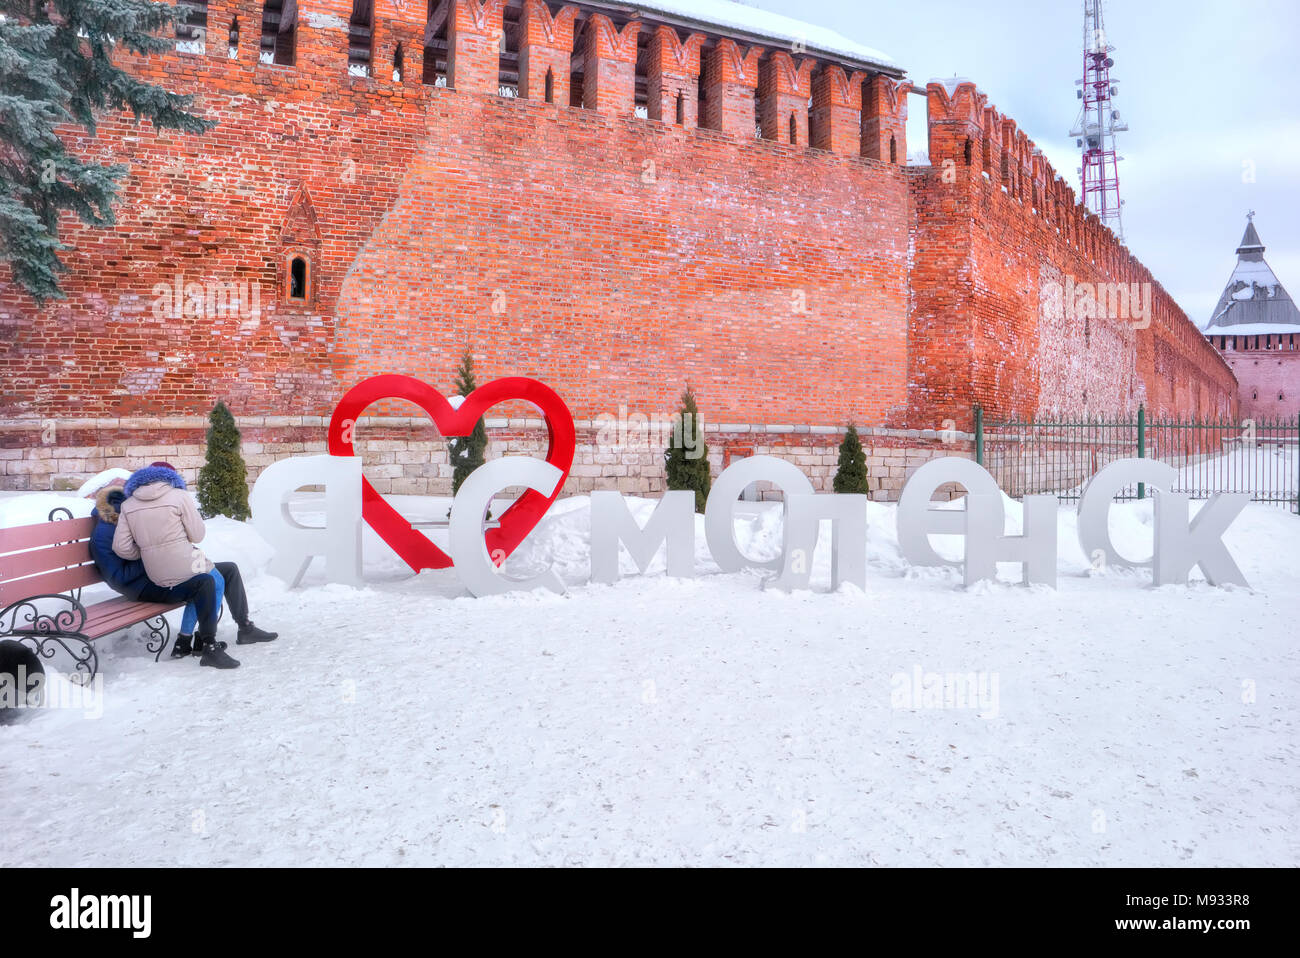 SMOLENSK, RUSSIA - March 08.2018: The guy with the girl on the bench near the installation I love Smolensk on the background of the fortress wall - Stock Image